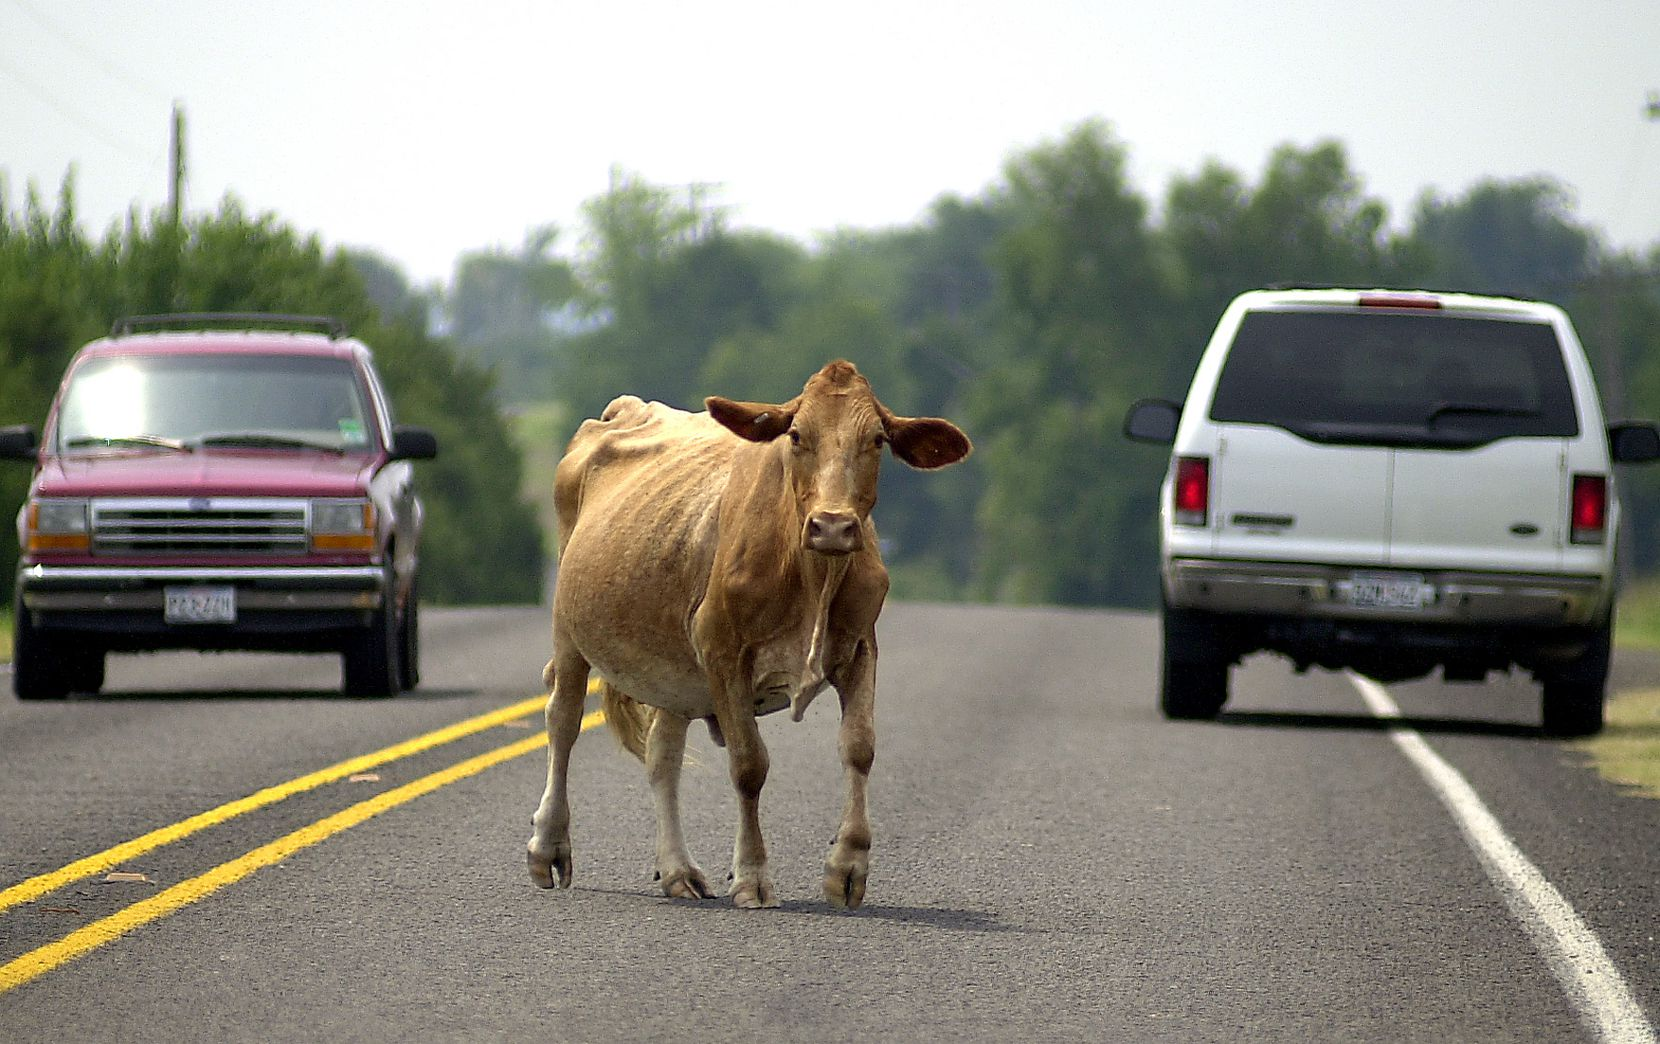 Traffic stops as a cow crosses the road in Bug Tussle in 2002.